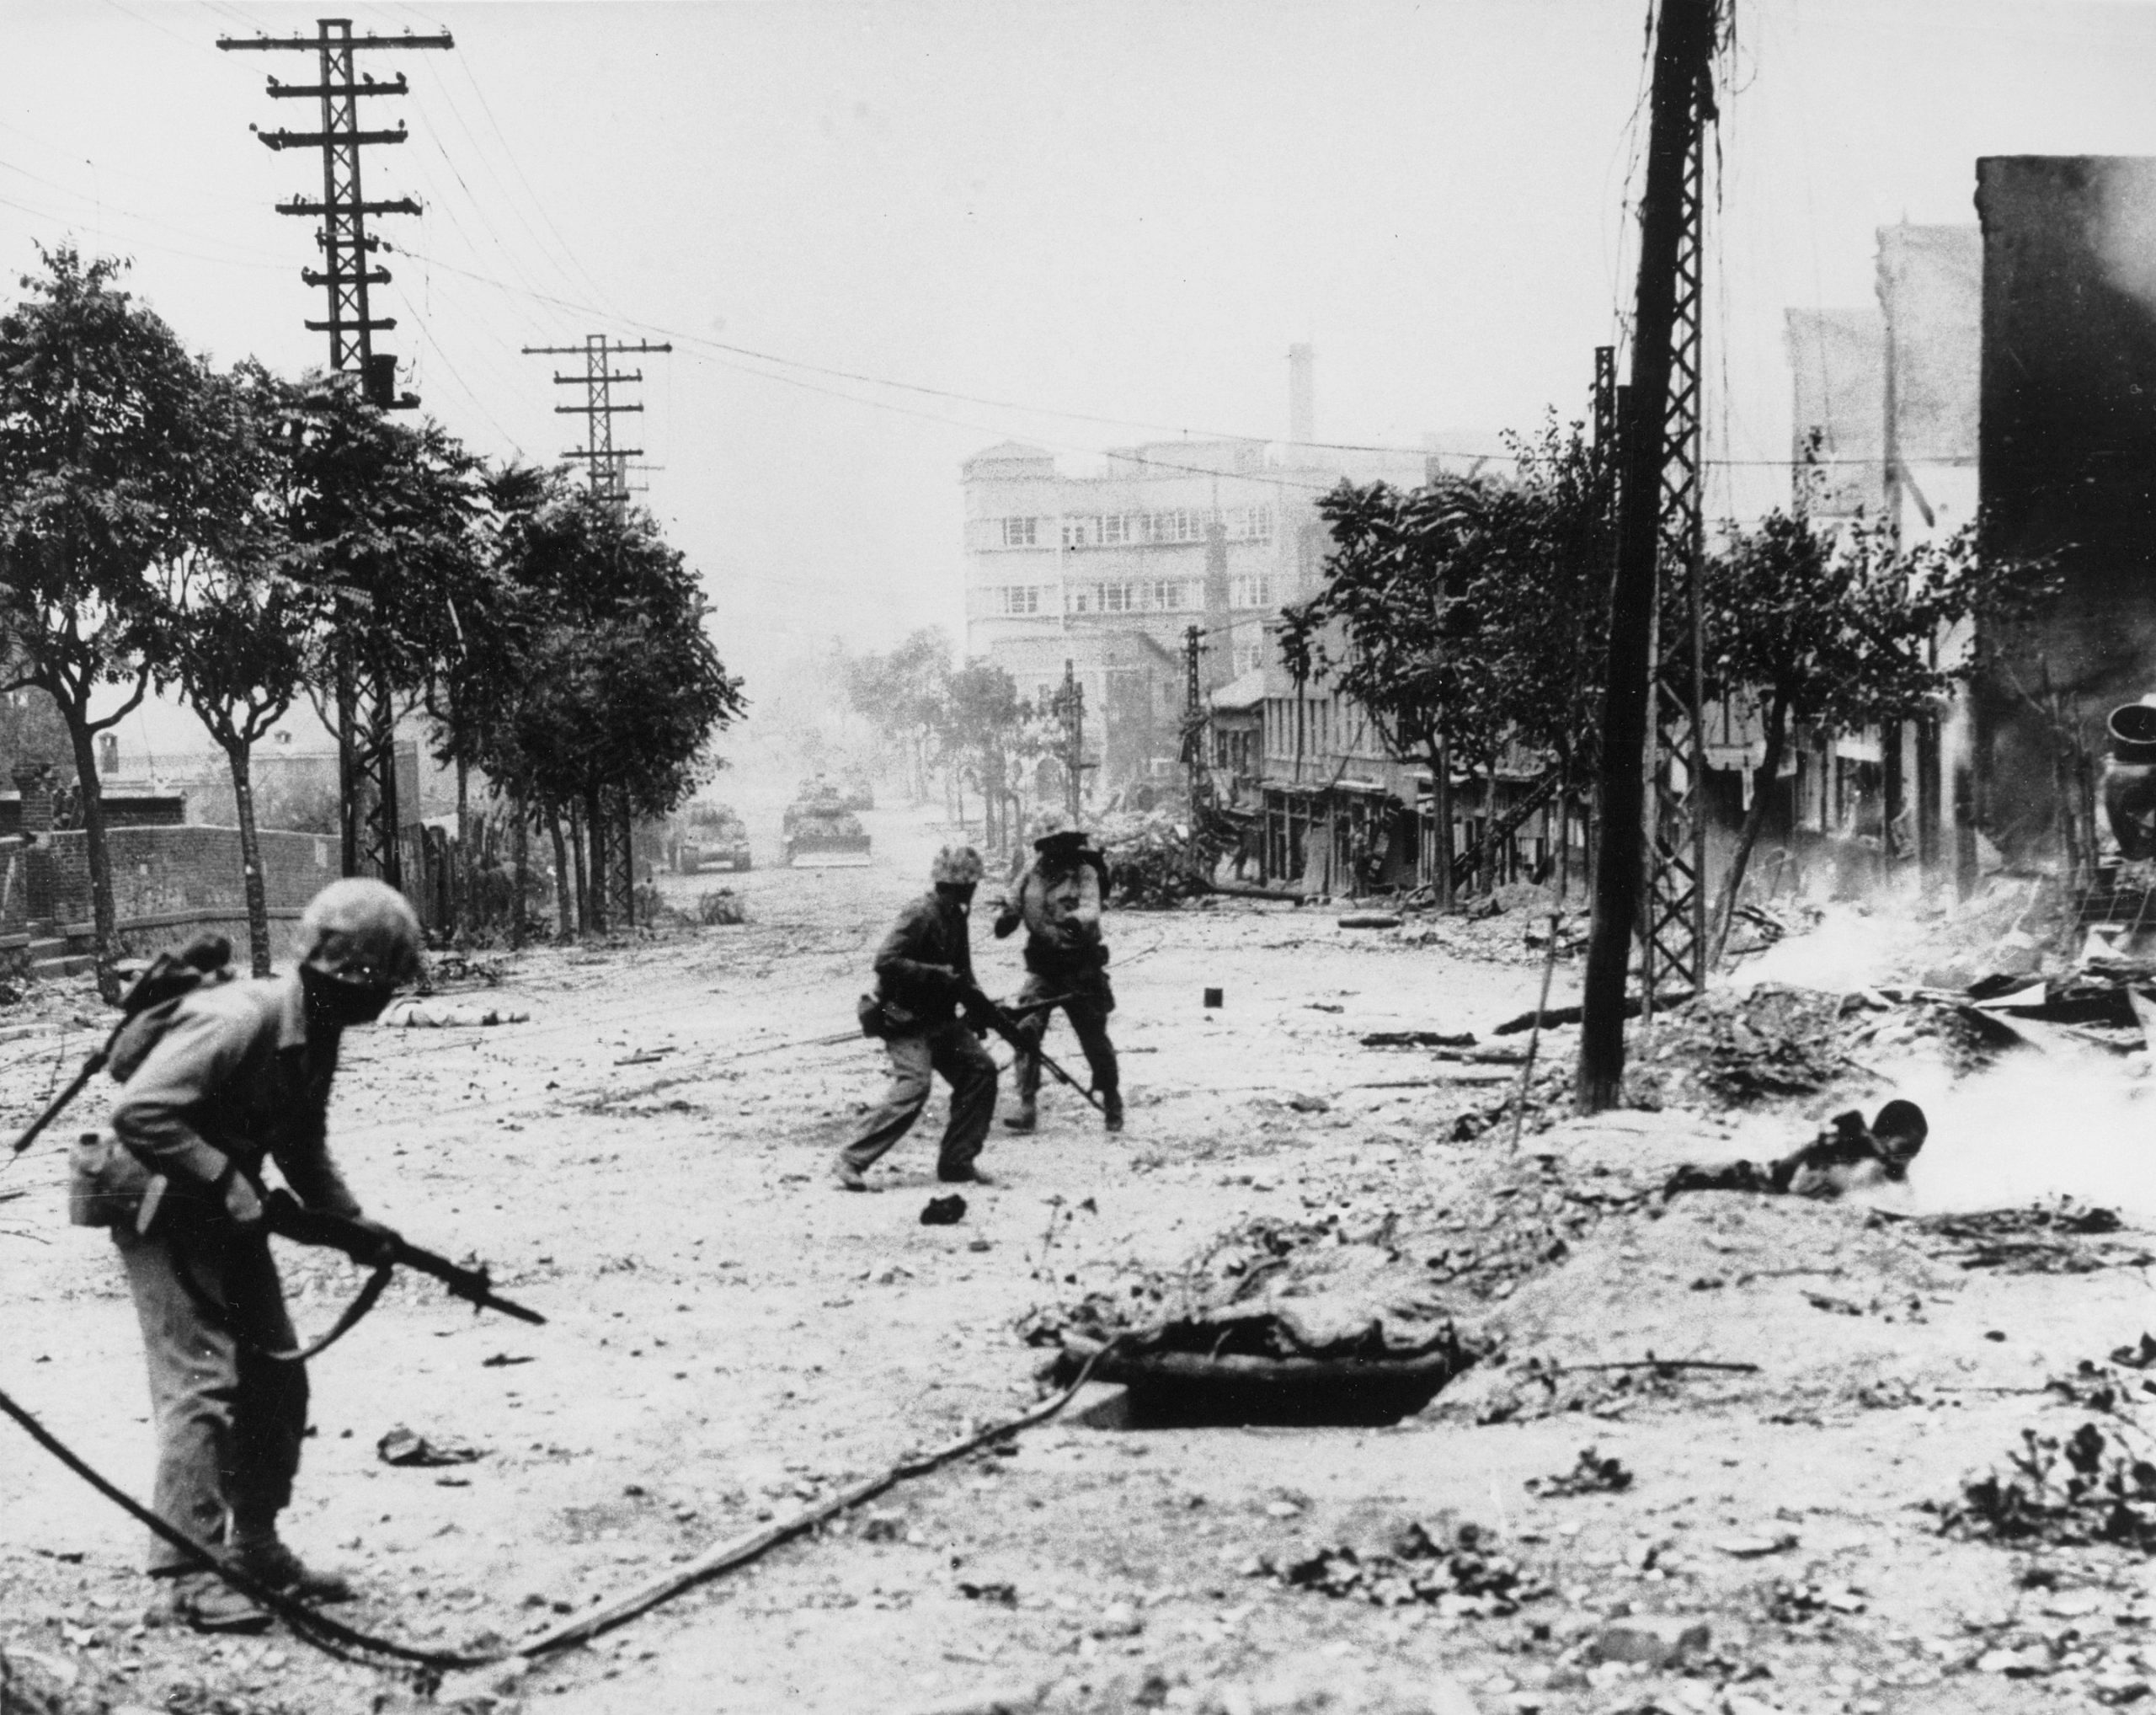 U.S. Marines engaged in street fighting